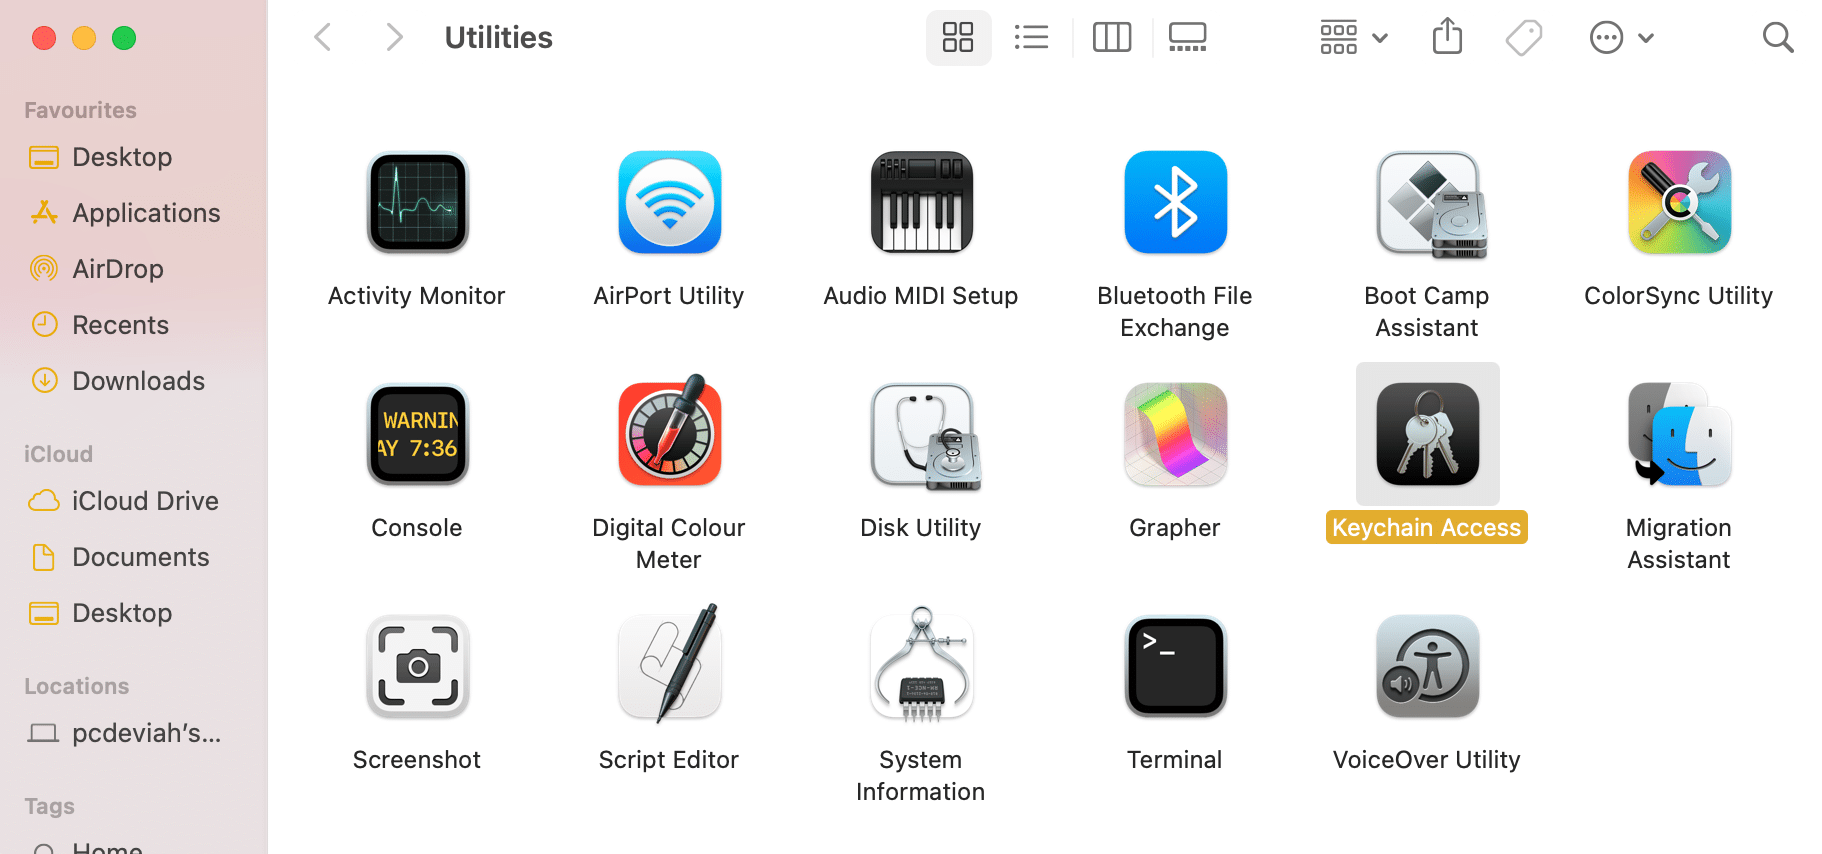 Click on Keychain Access. How to use Utilities Folder Mac